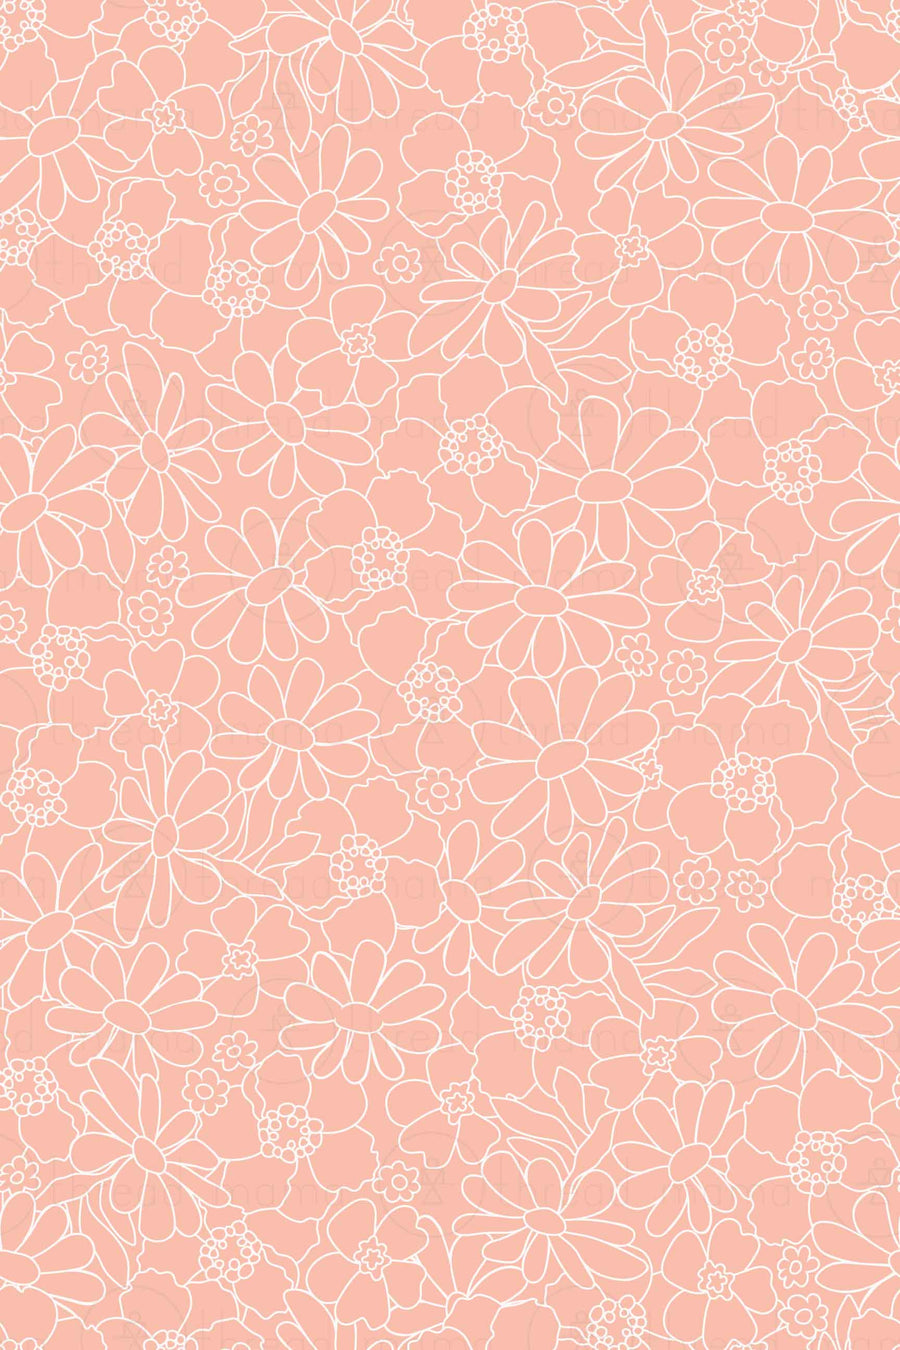 Repeating Pattern #42 (Seamless)